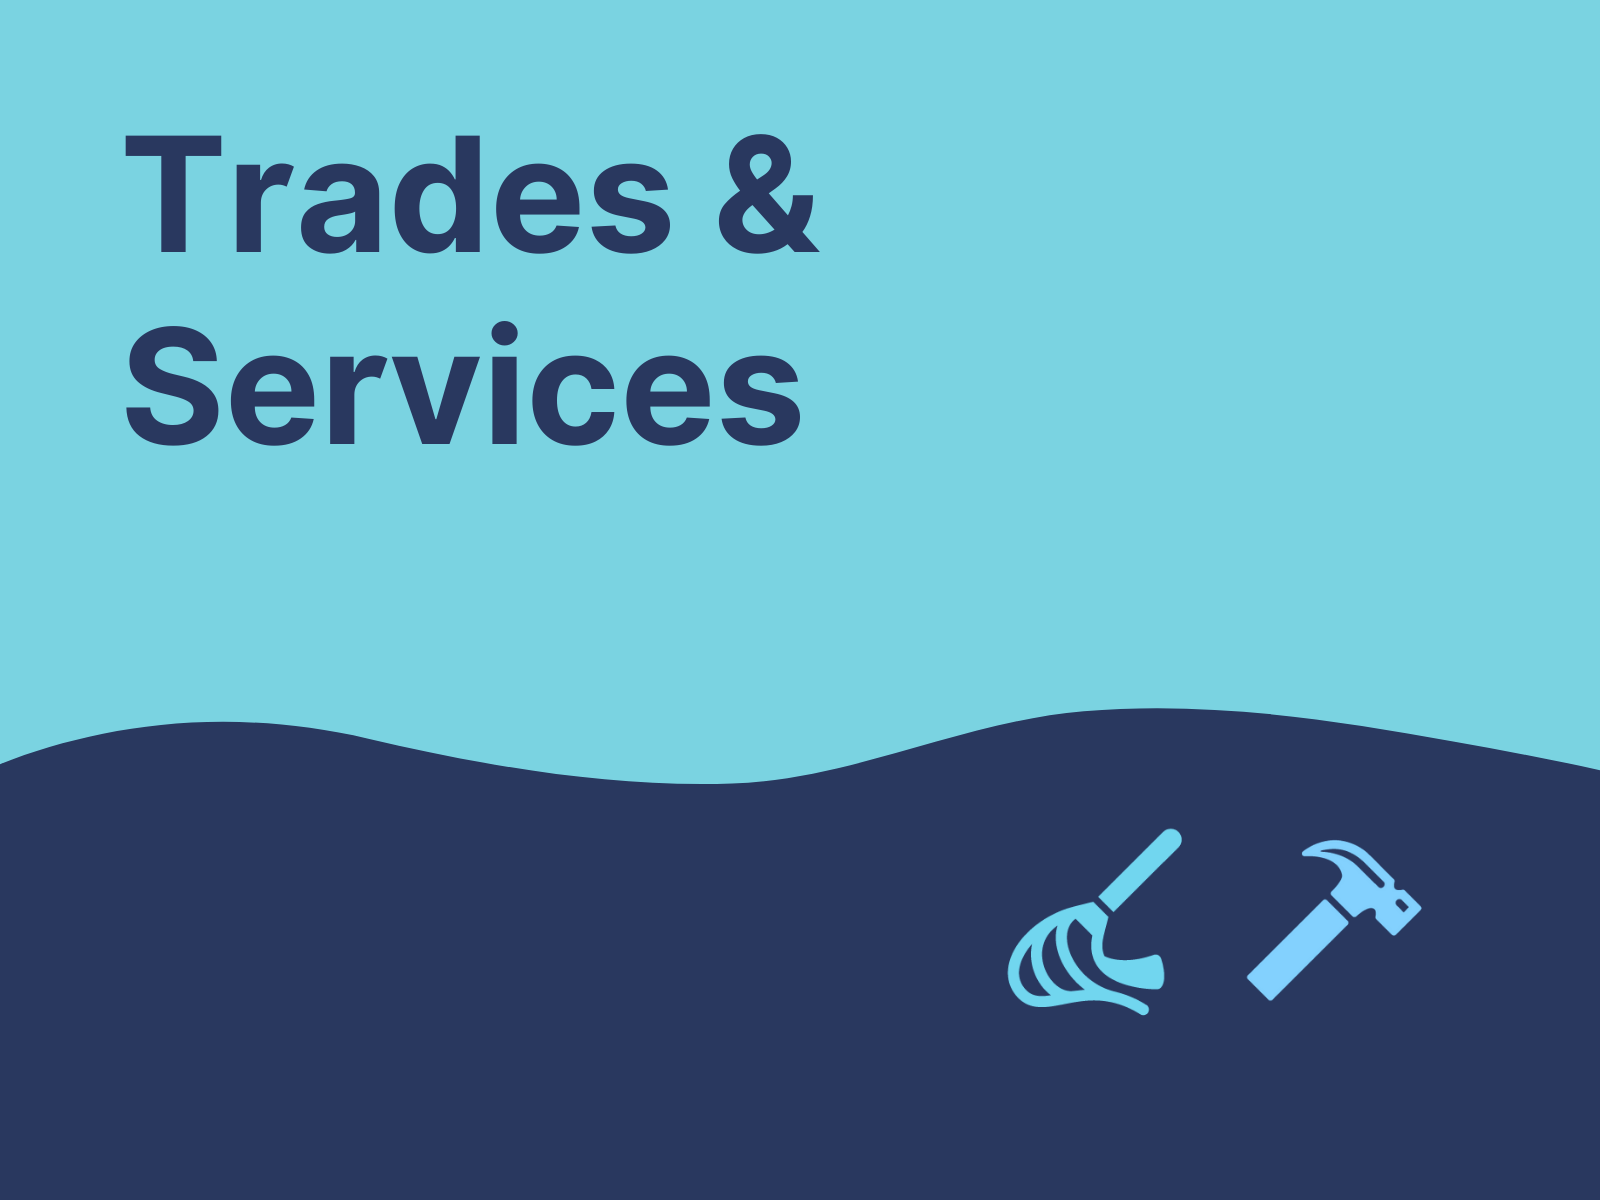 Trades and services